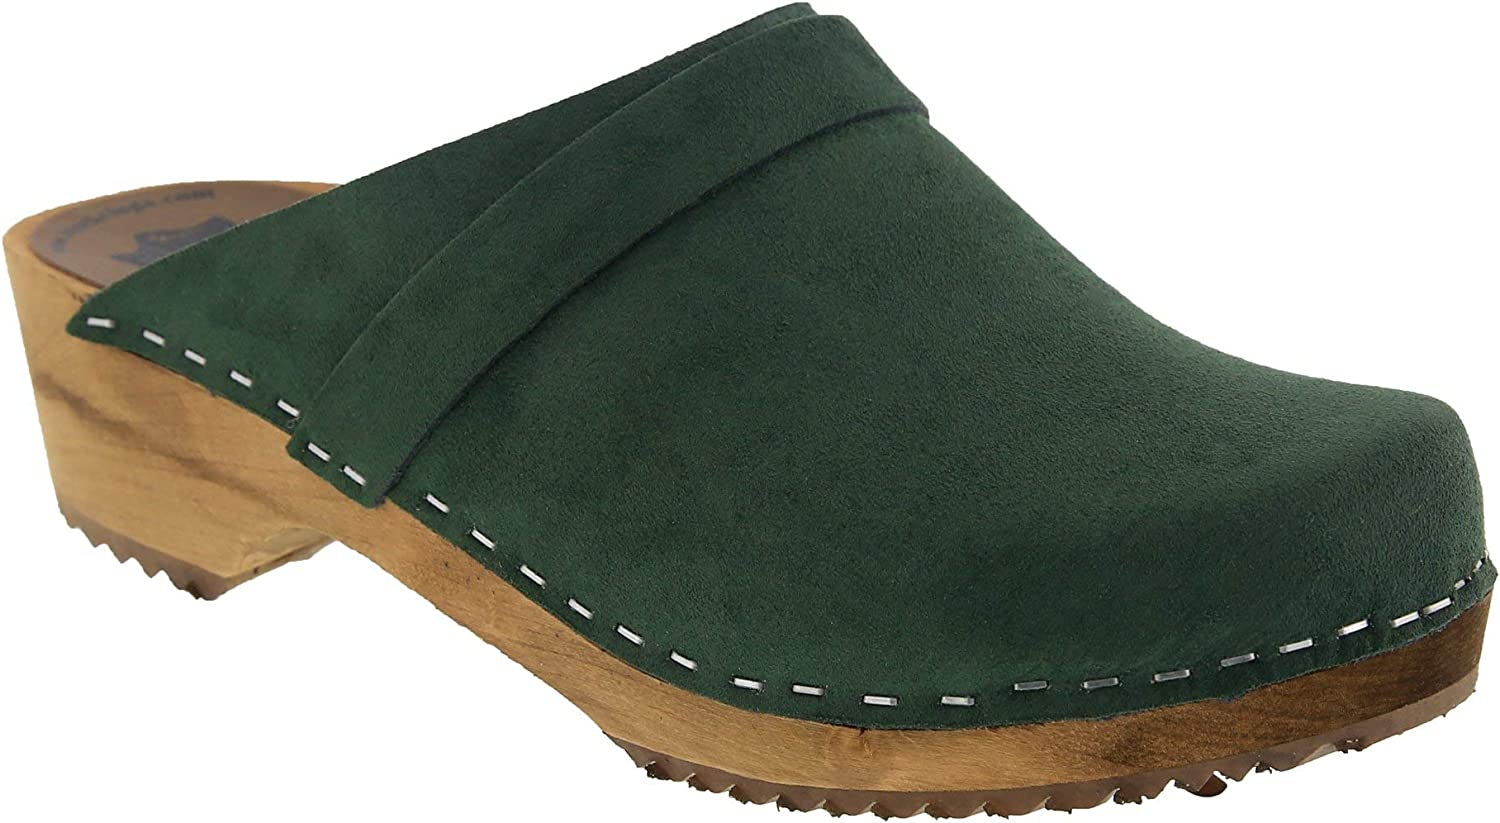 Norweign Clogs Re-soled Mahagony Leather 38